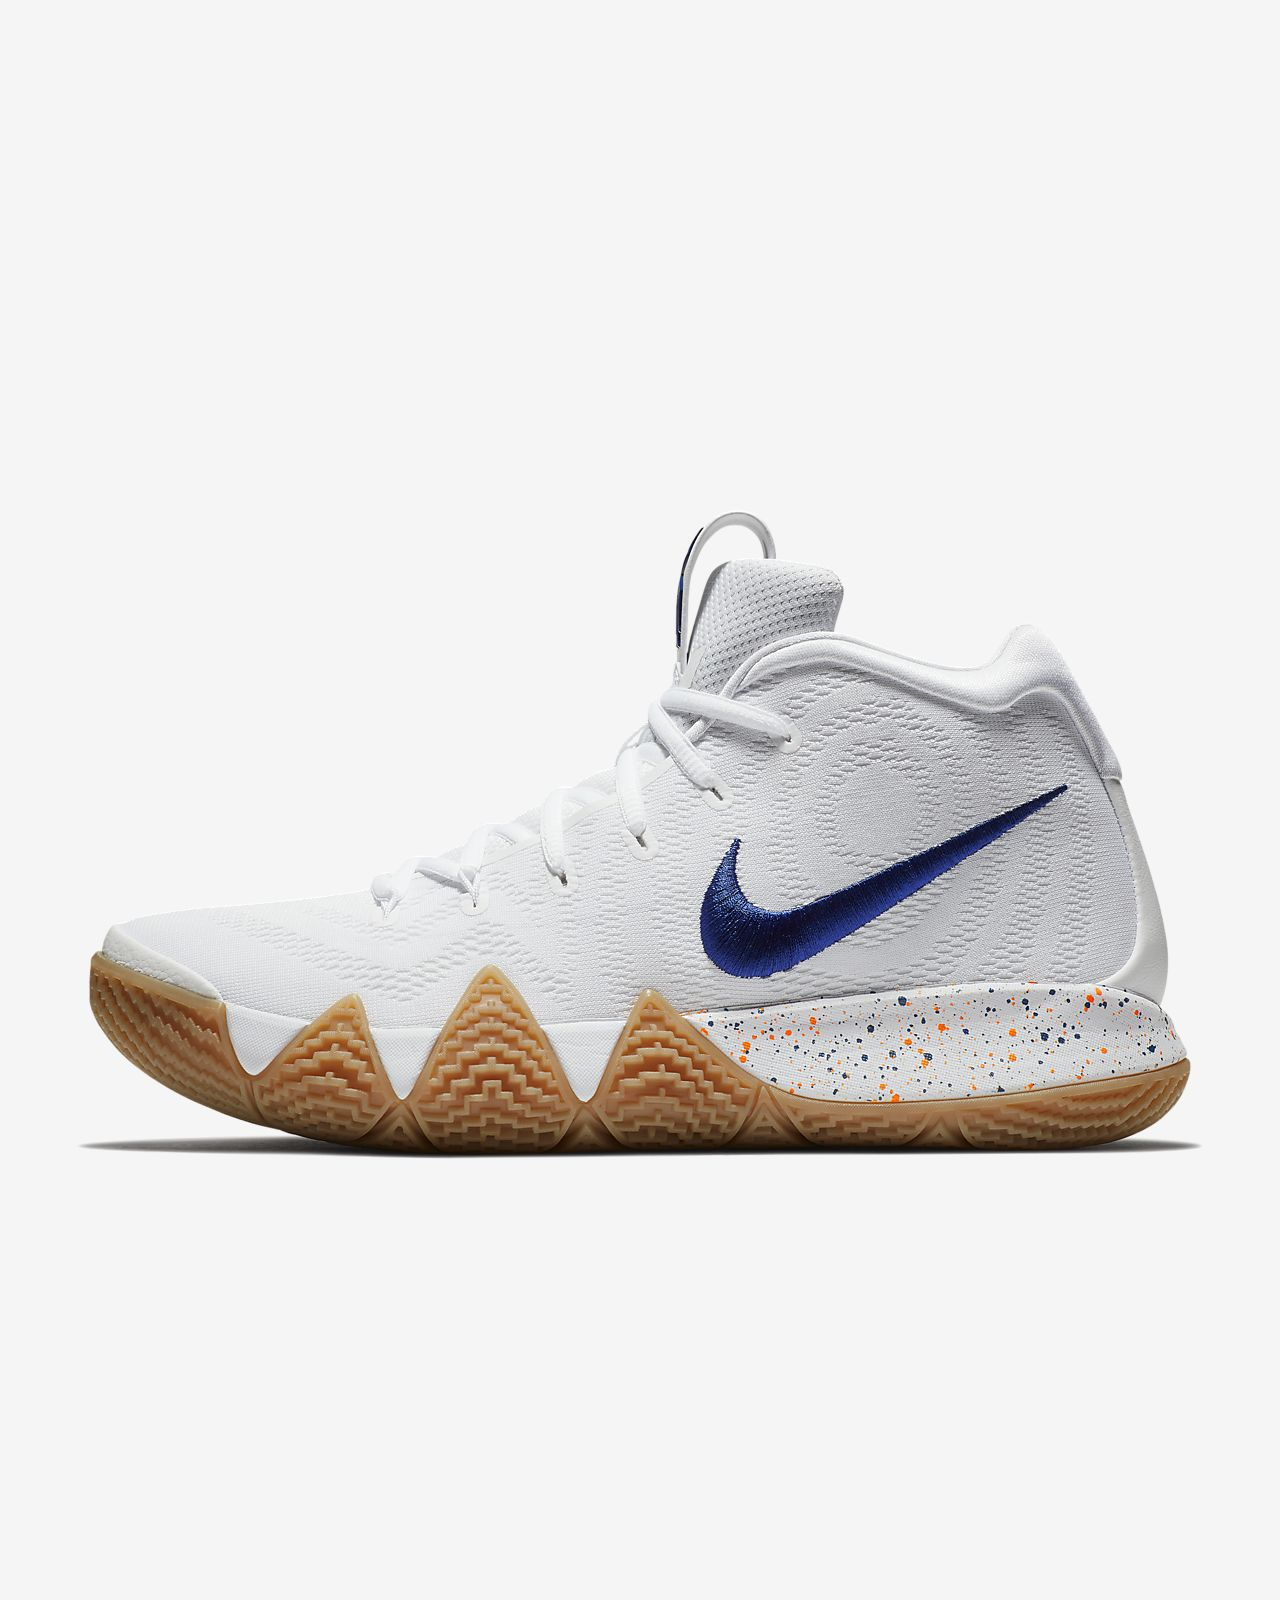 on sale 8390a 8501a Kyrie 4 'Uncle Drew' Basketball Shoe